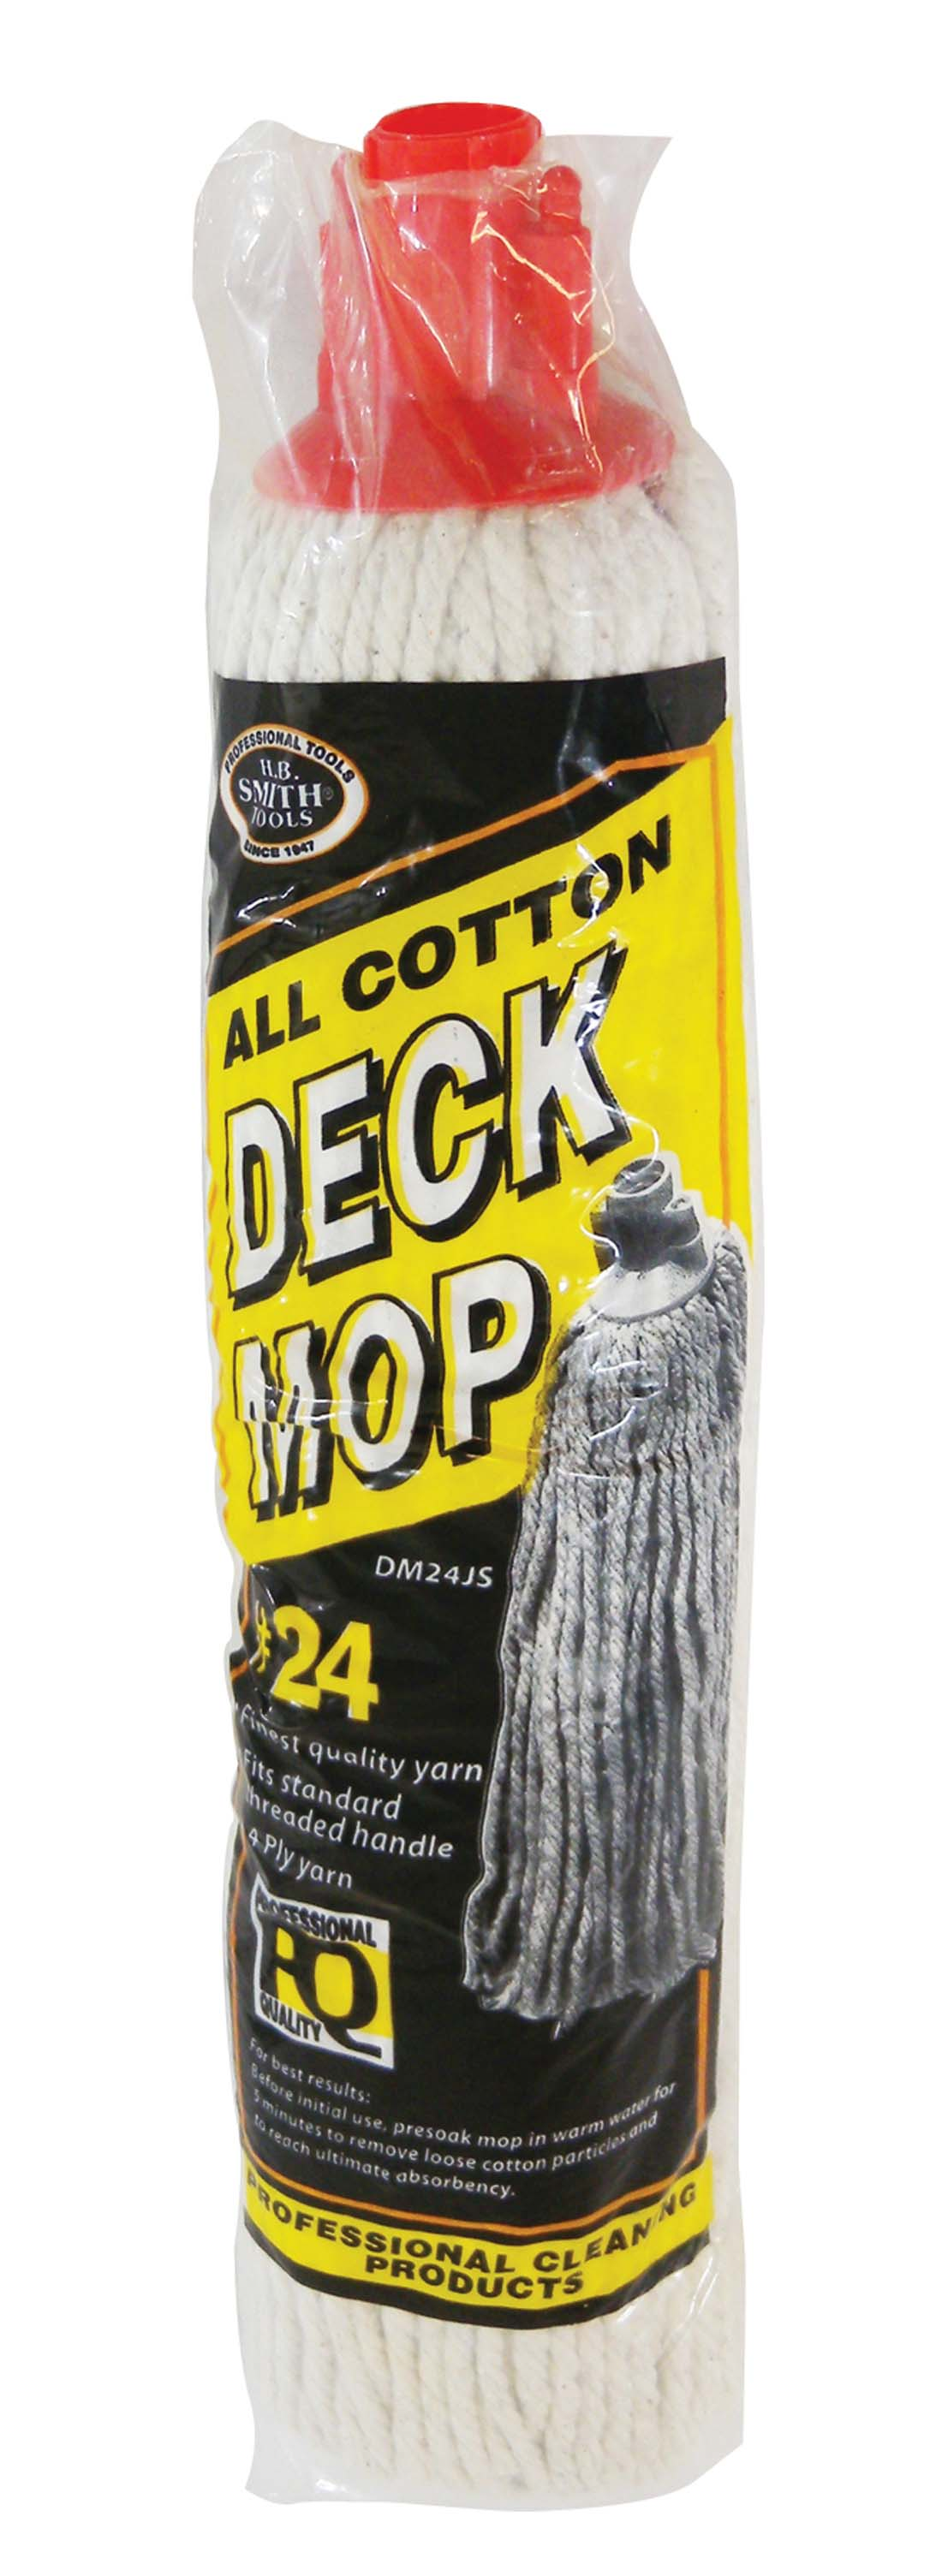 View COTTON DECK MOP HEAD 12 OZ FINEST QUALITY 4 PLY YARN # 24 THREADED HANDLE